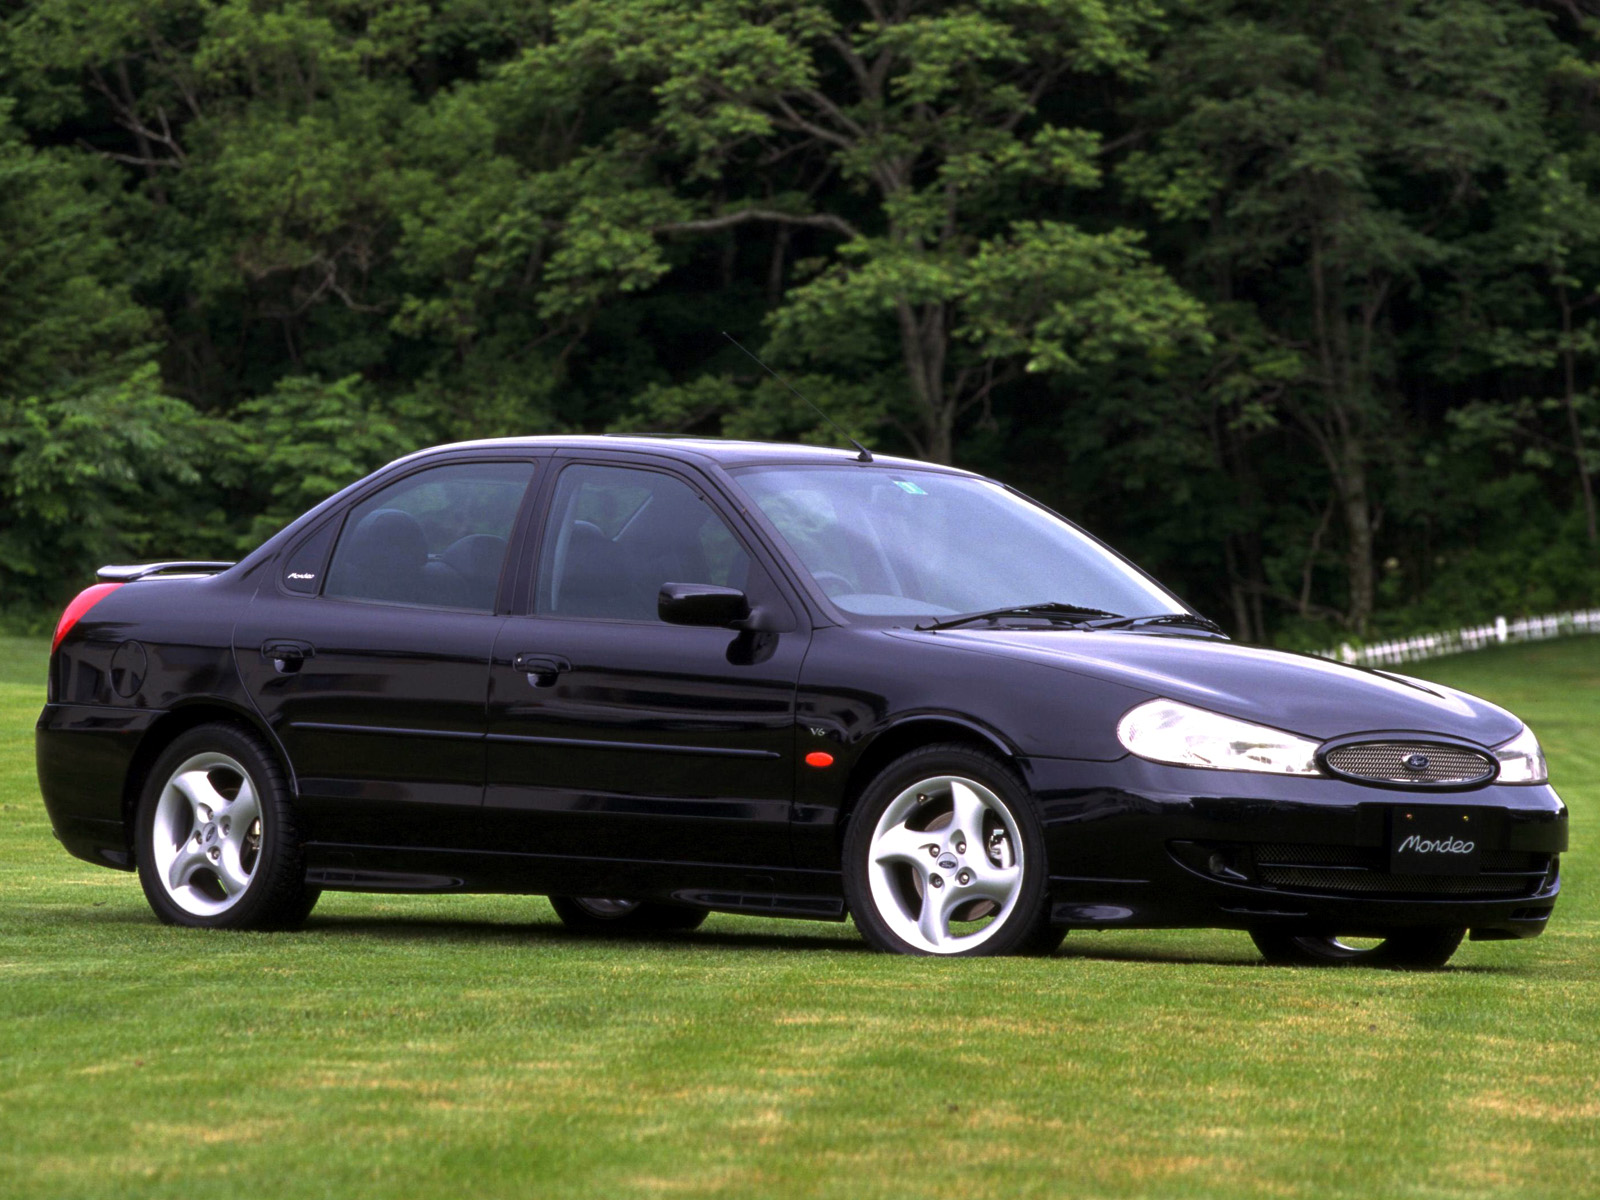 ford mondeo sedan japan 1996 2000 ford mondeo sedan japan 1996 2000 photo 02 car in pictures. Black Bedroom Furniture Sets. Home Design Ideas